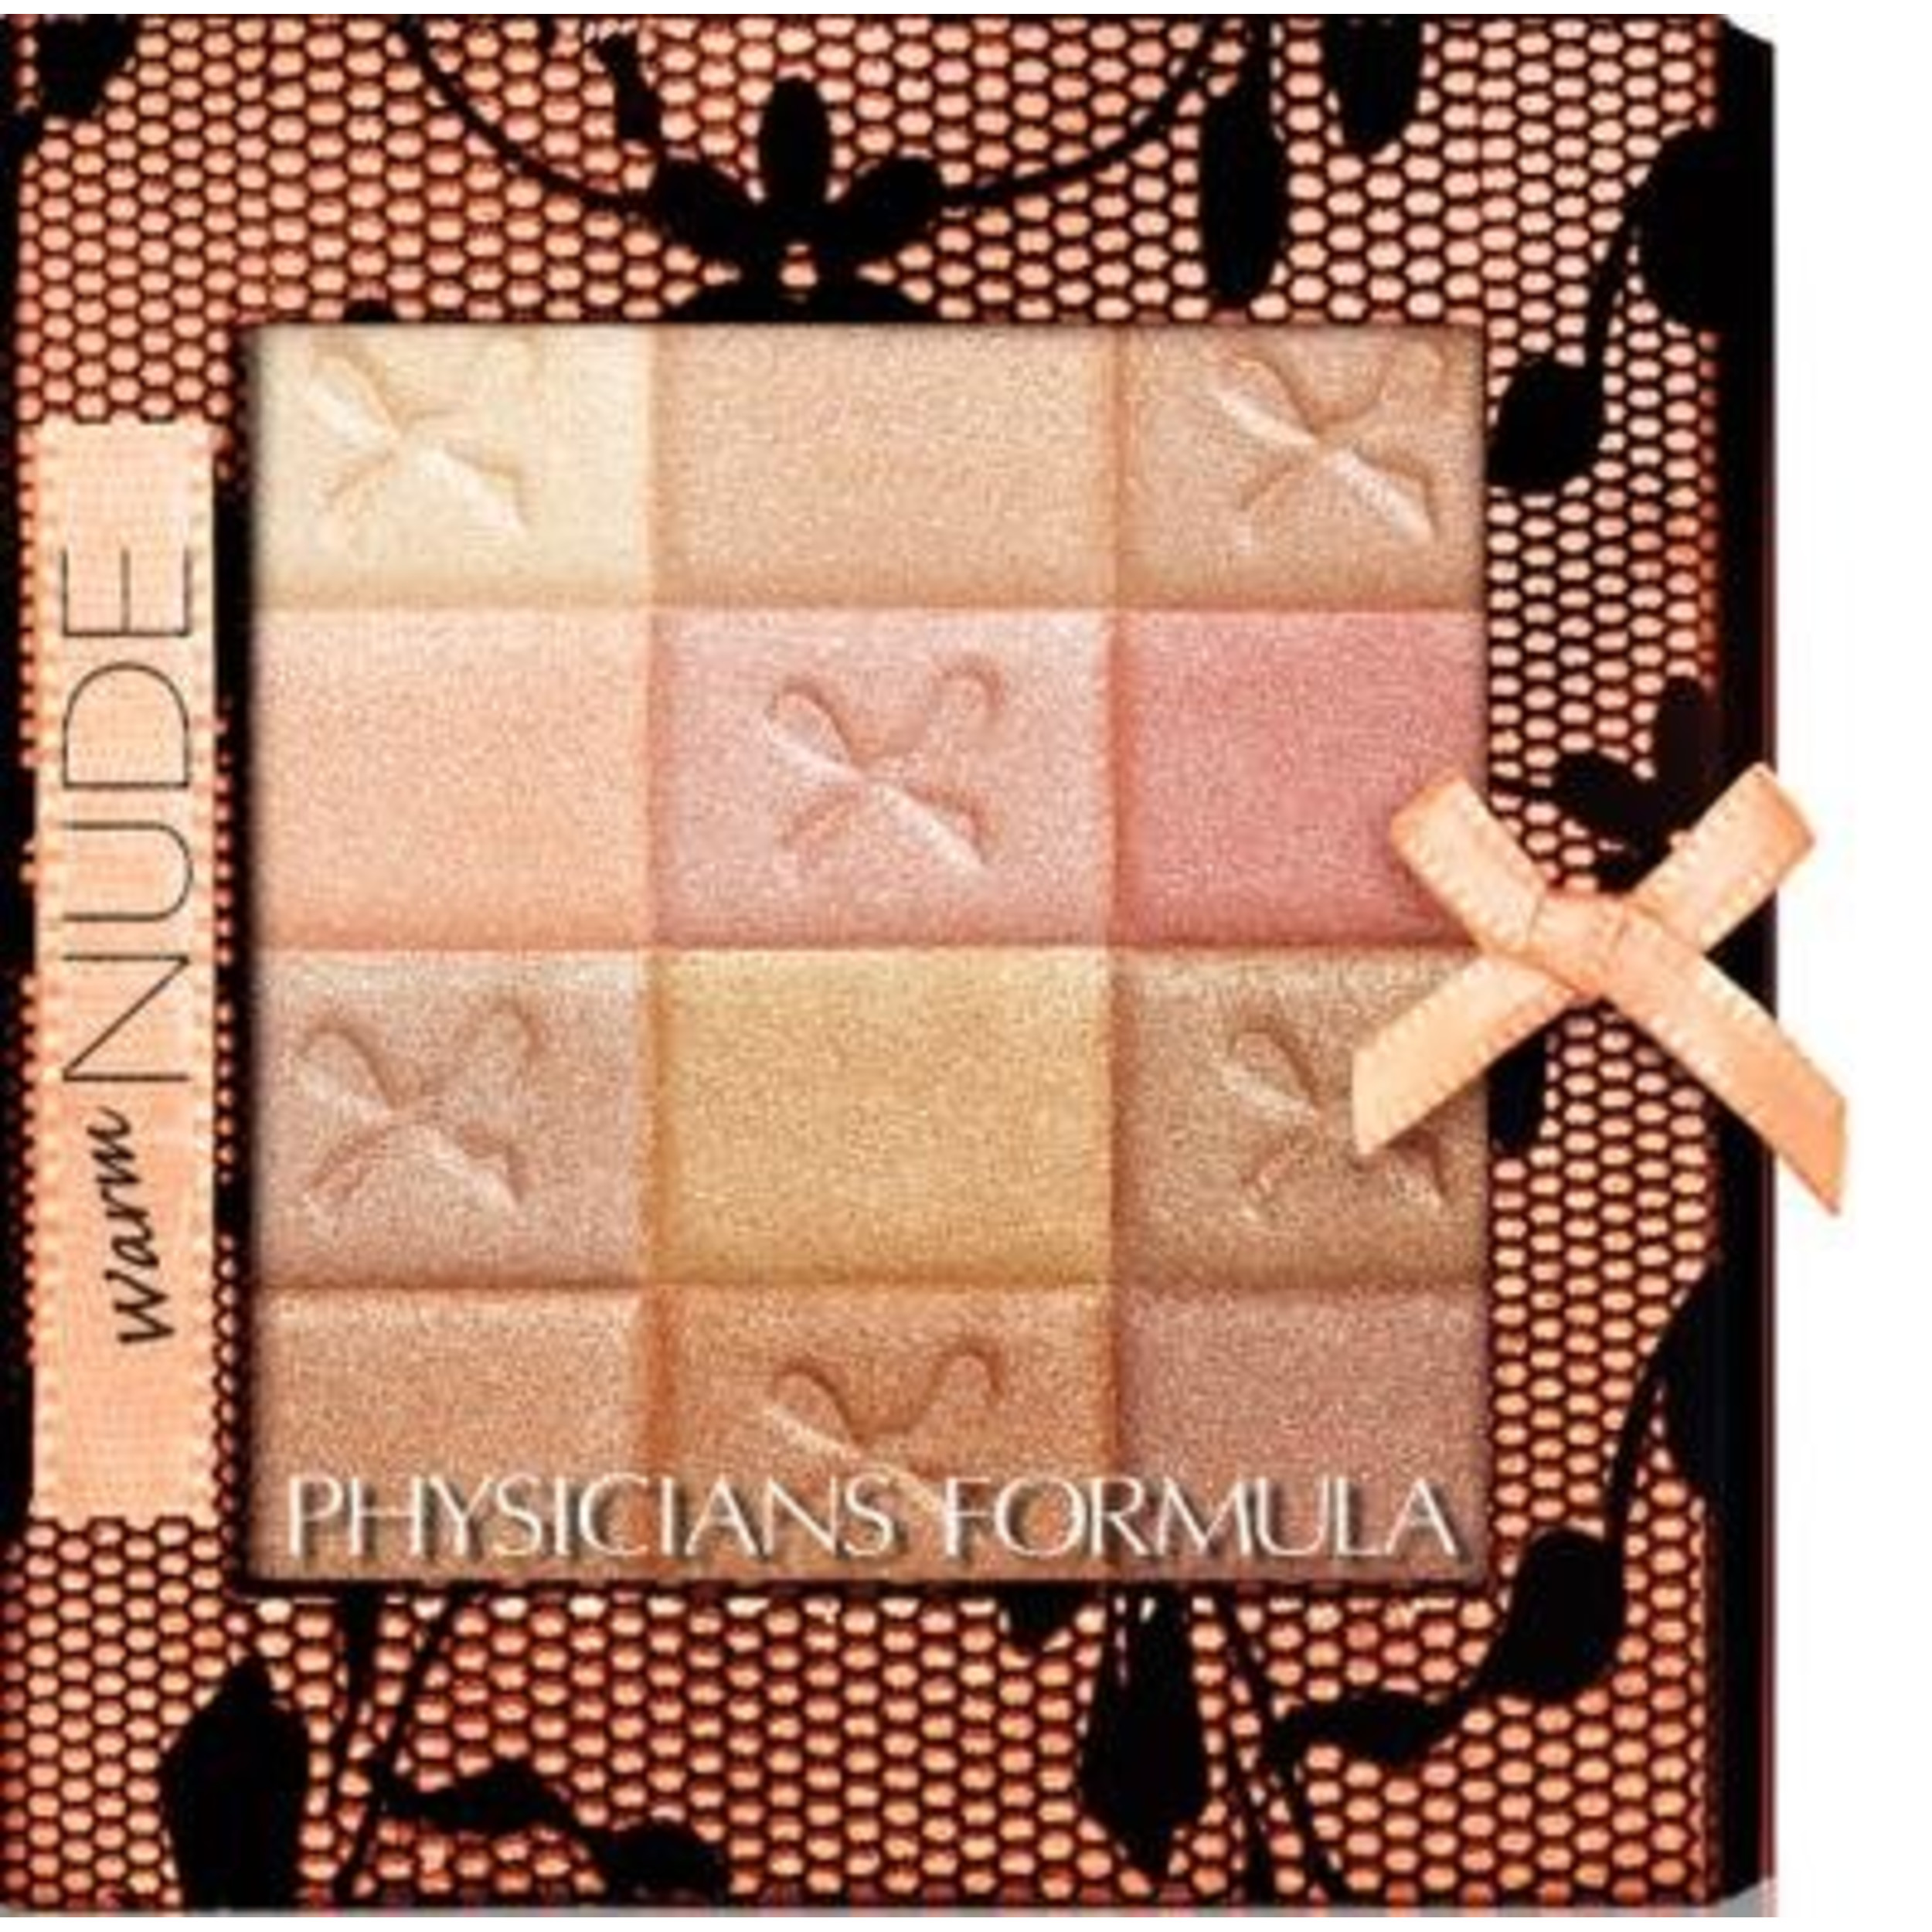 Physicians Formula Shimmer Strips Custom All-in-1 Nude Palette for Face & Eyes - Warm Nude